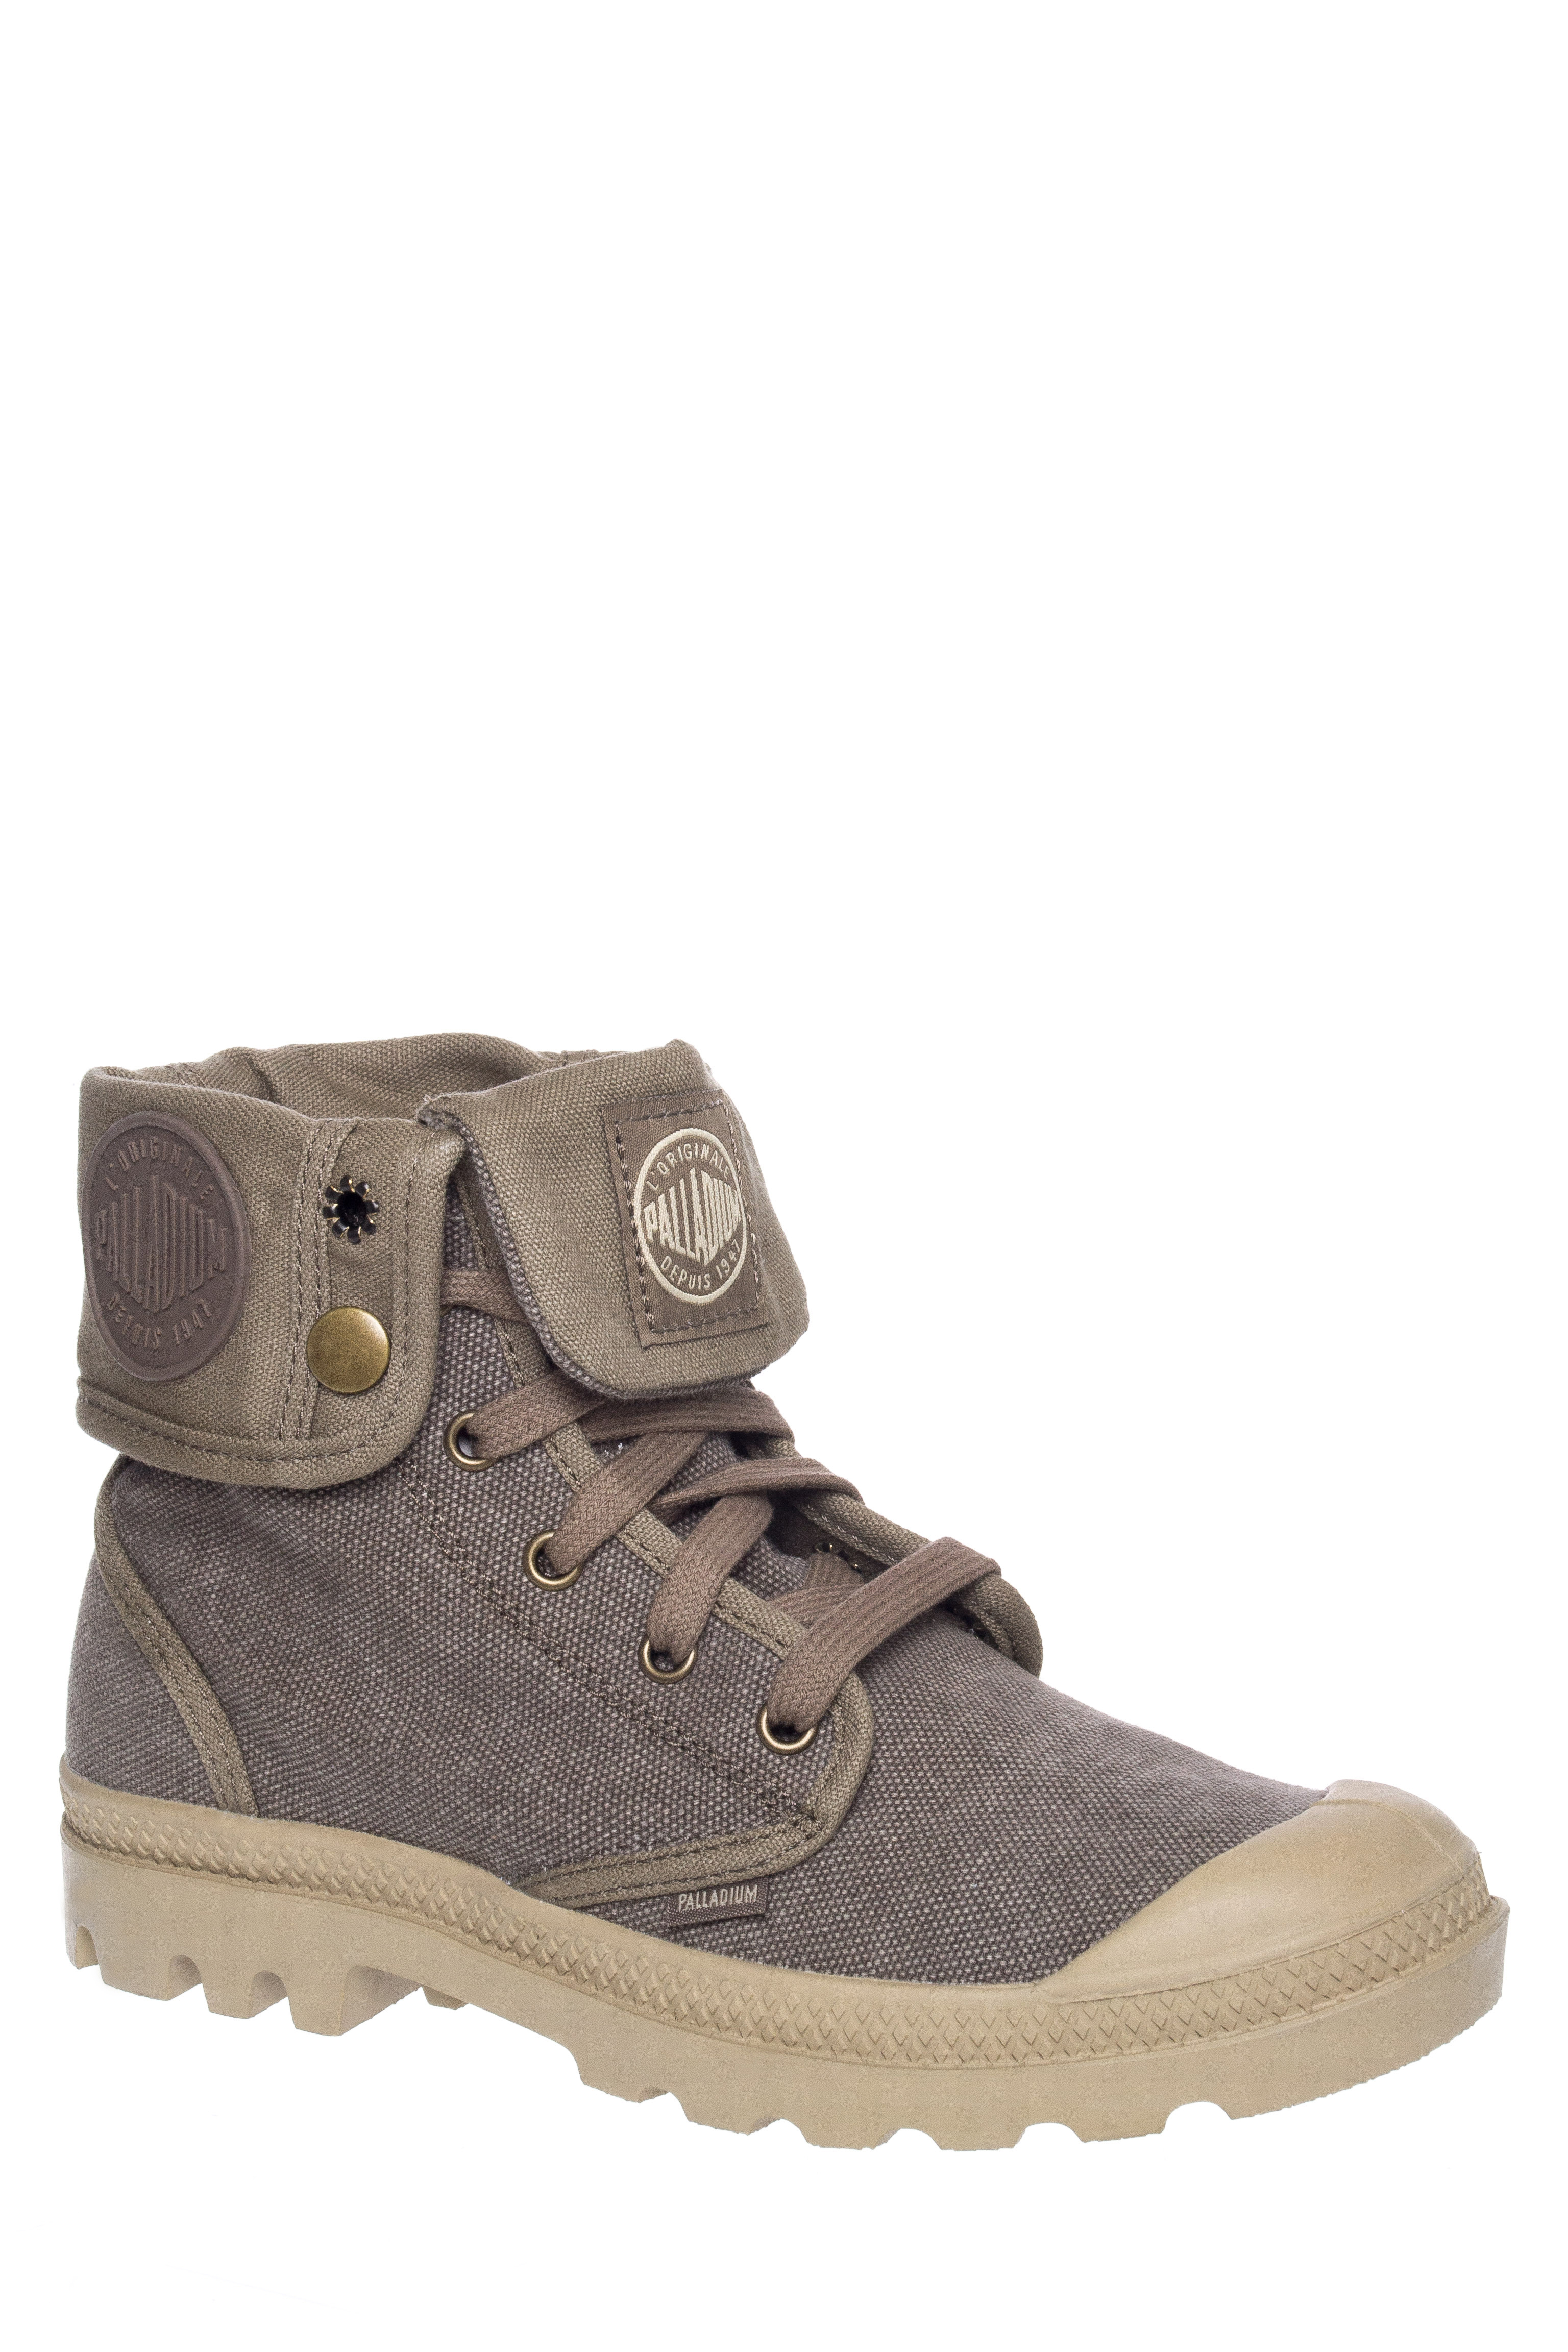 Palladium Baggy Low Heel Lace-Up Boots - Boue / Putty